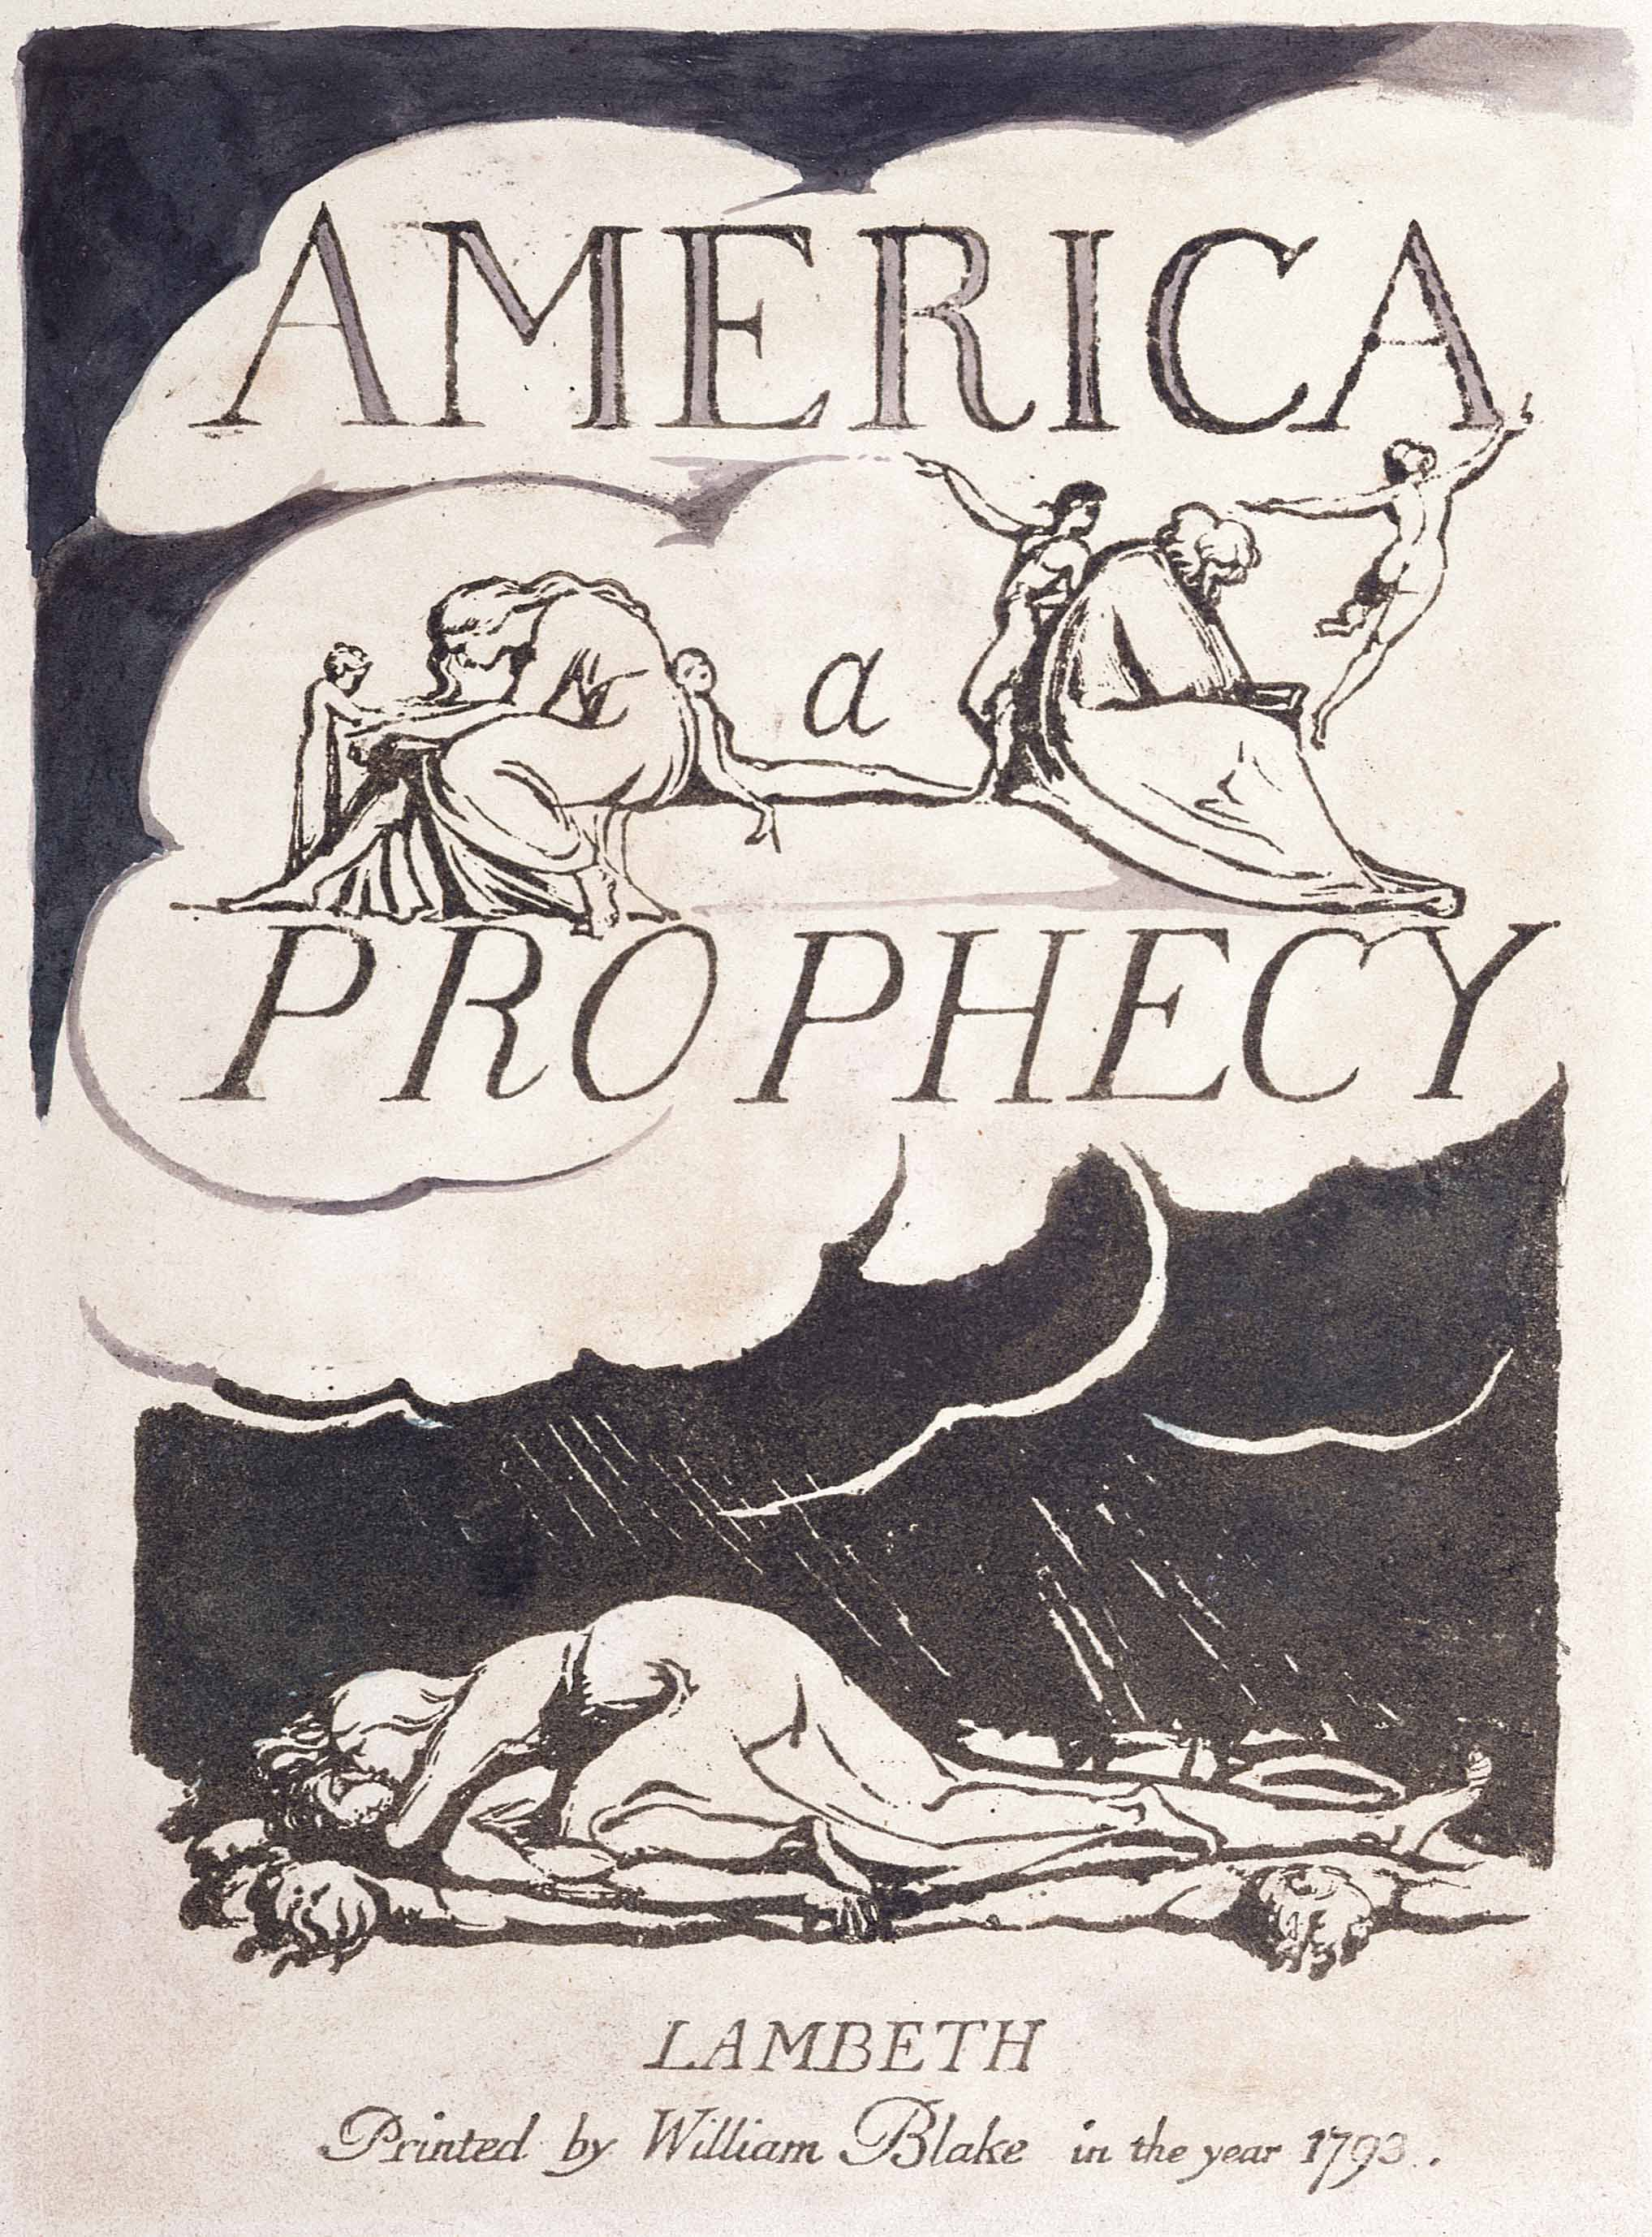 AMERICA 					a 					PROPHECY 					LAMBETH 					Printed by William Blake in the year 1793,